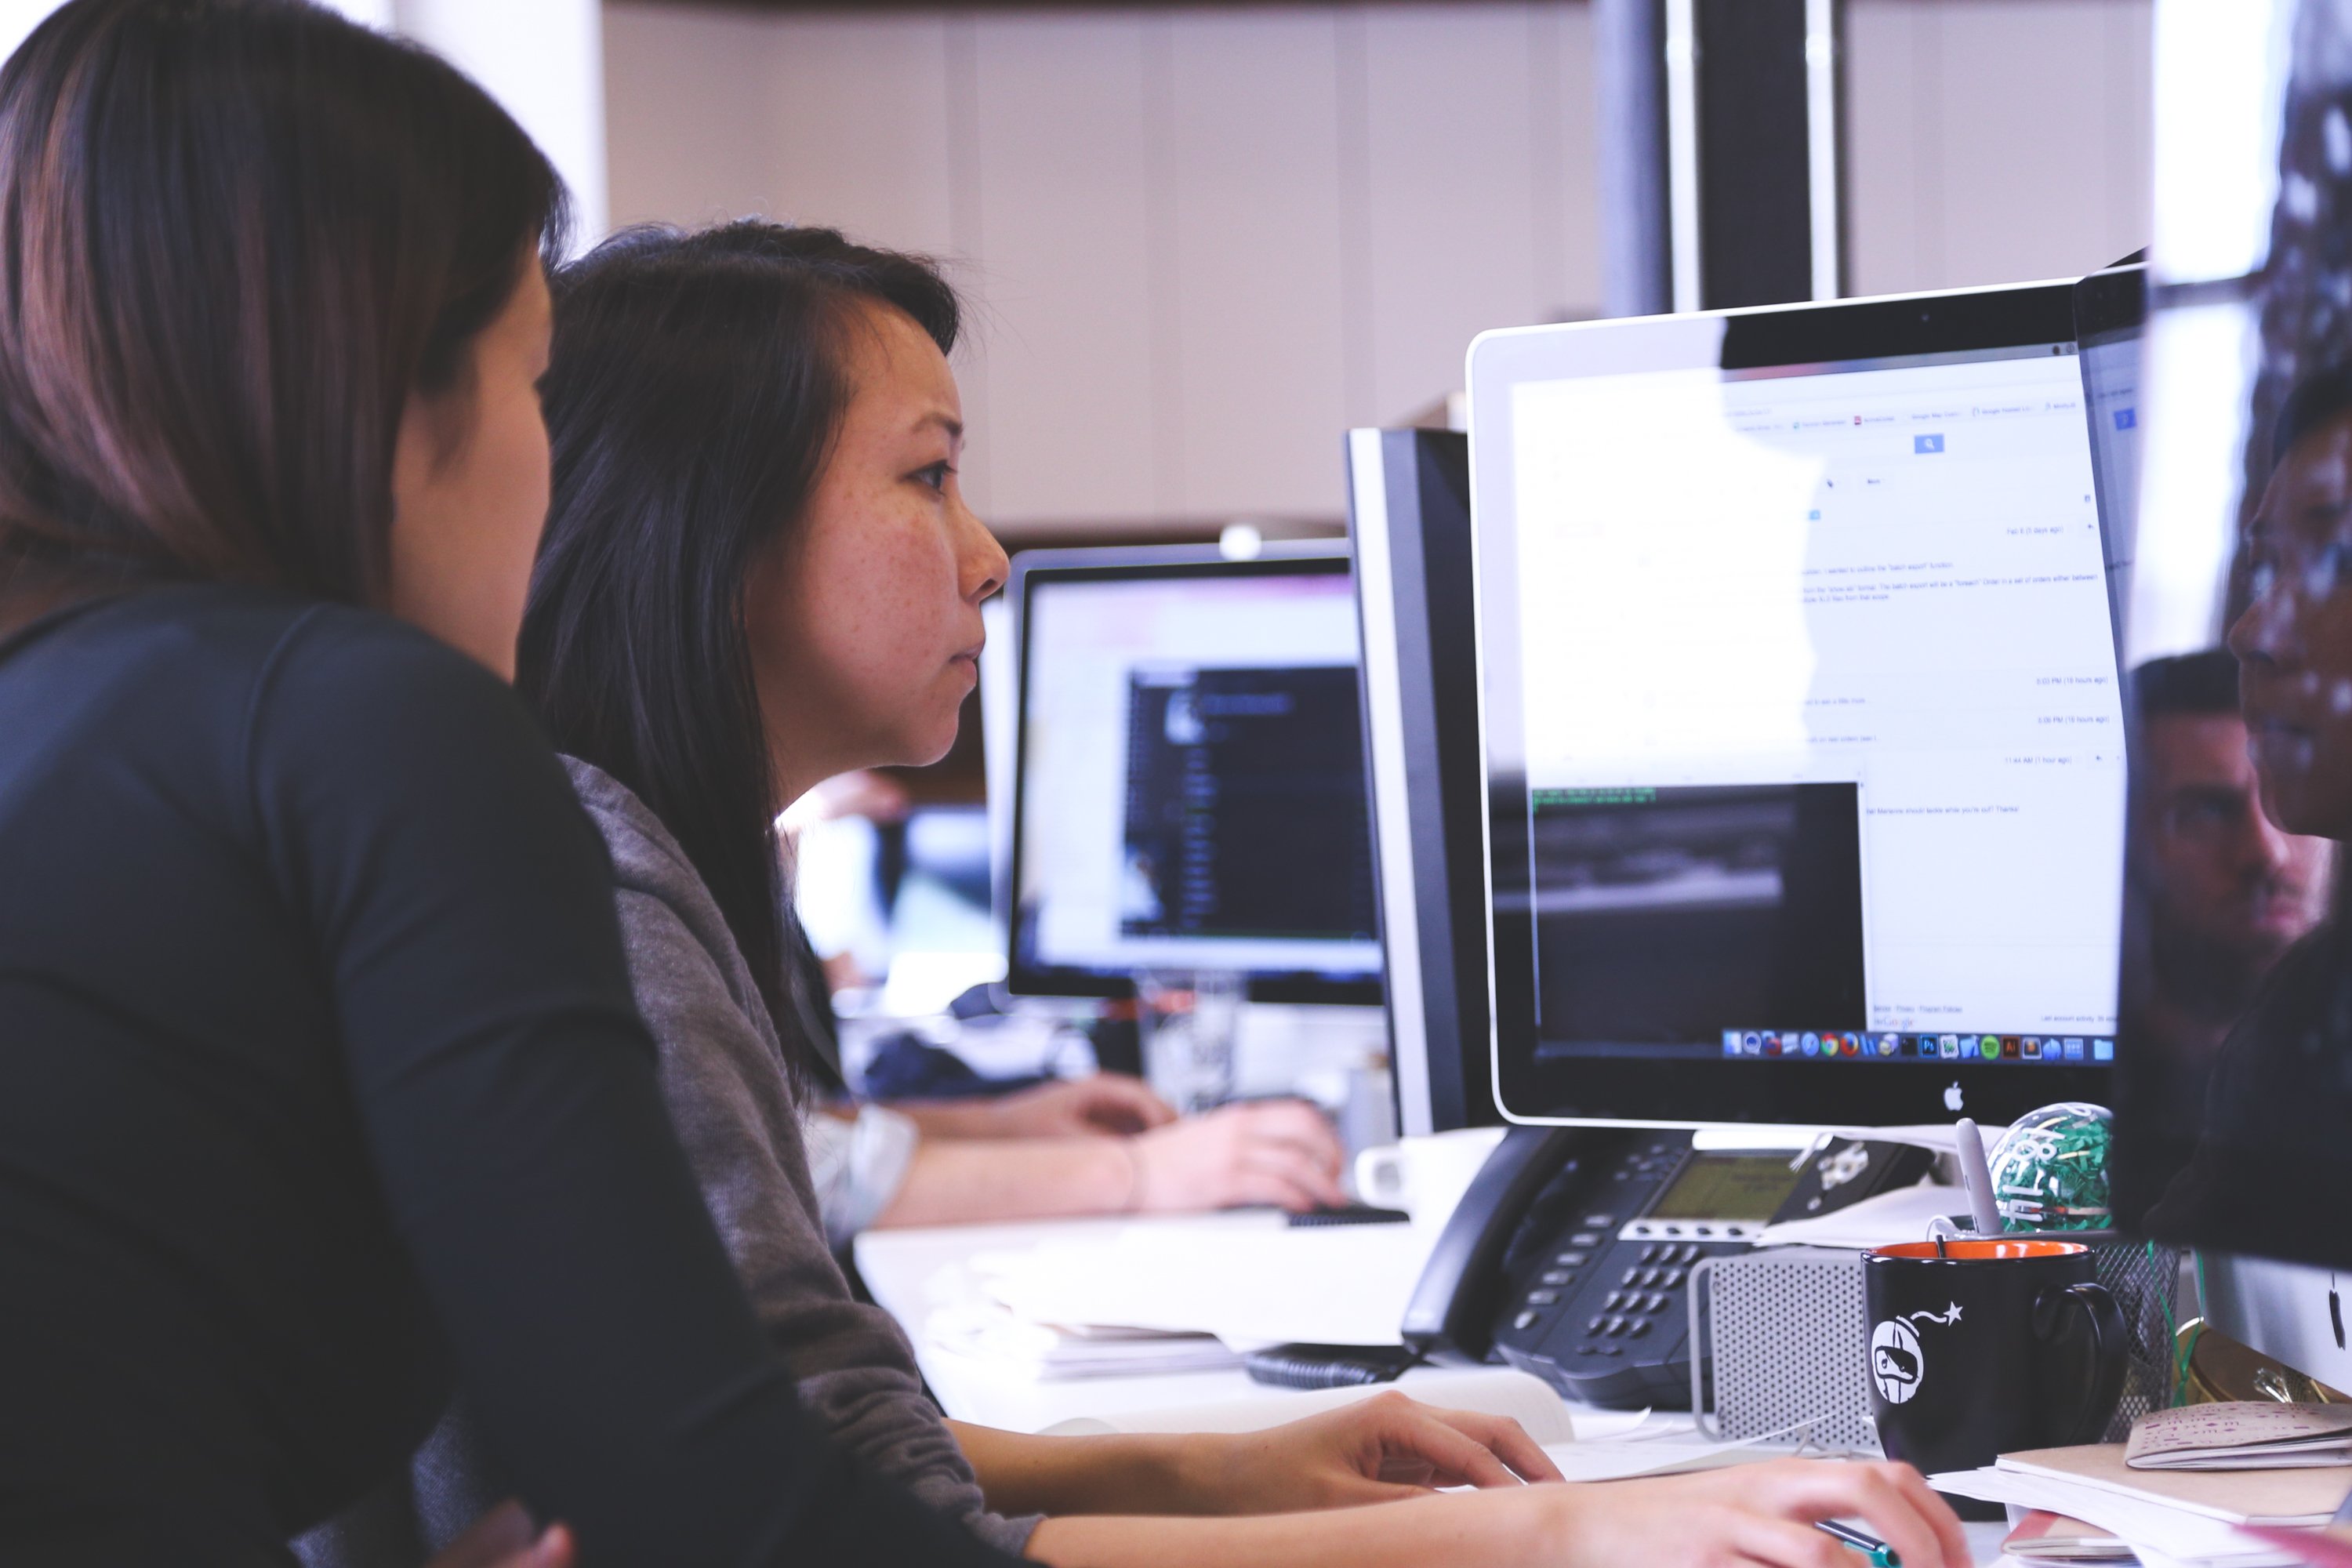 Profile shot of two women working together at a computer.